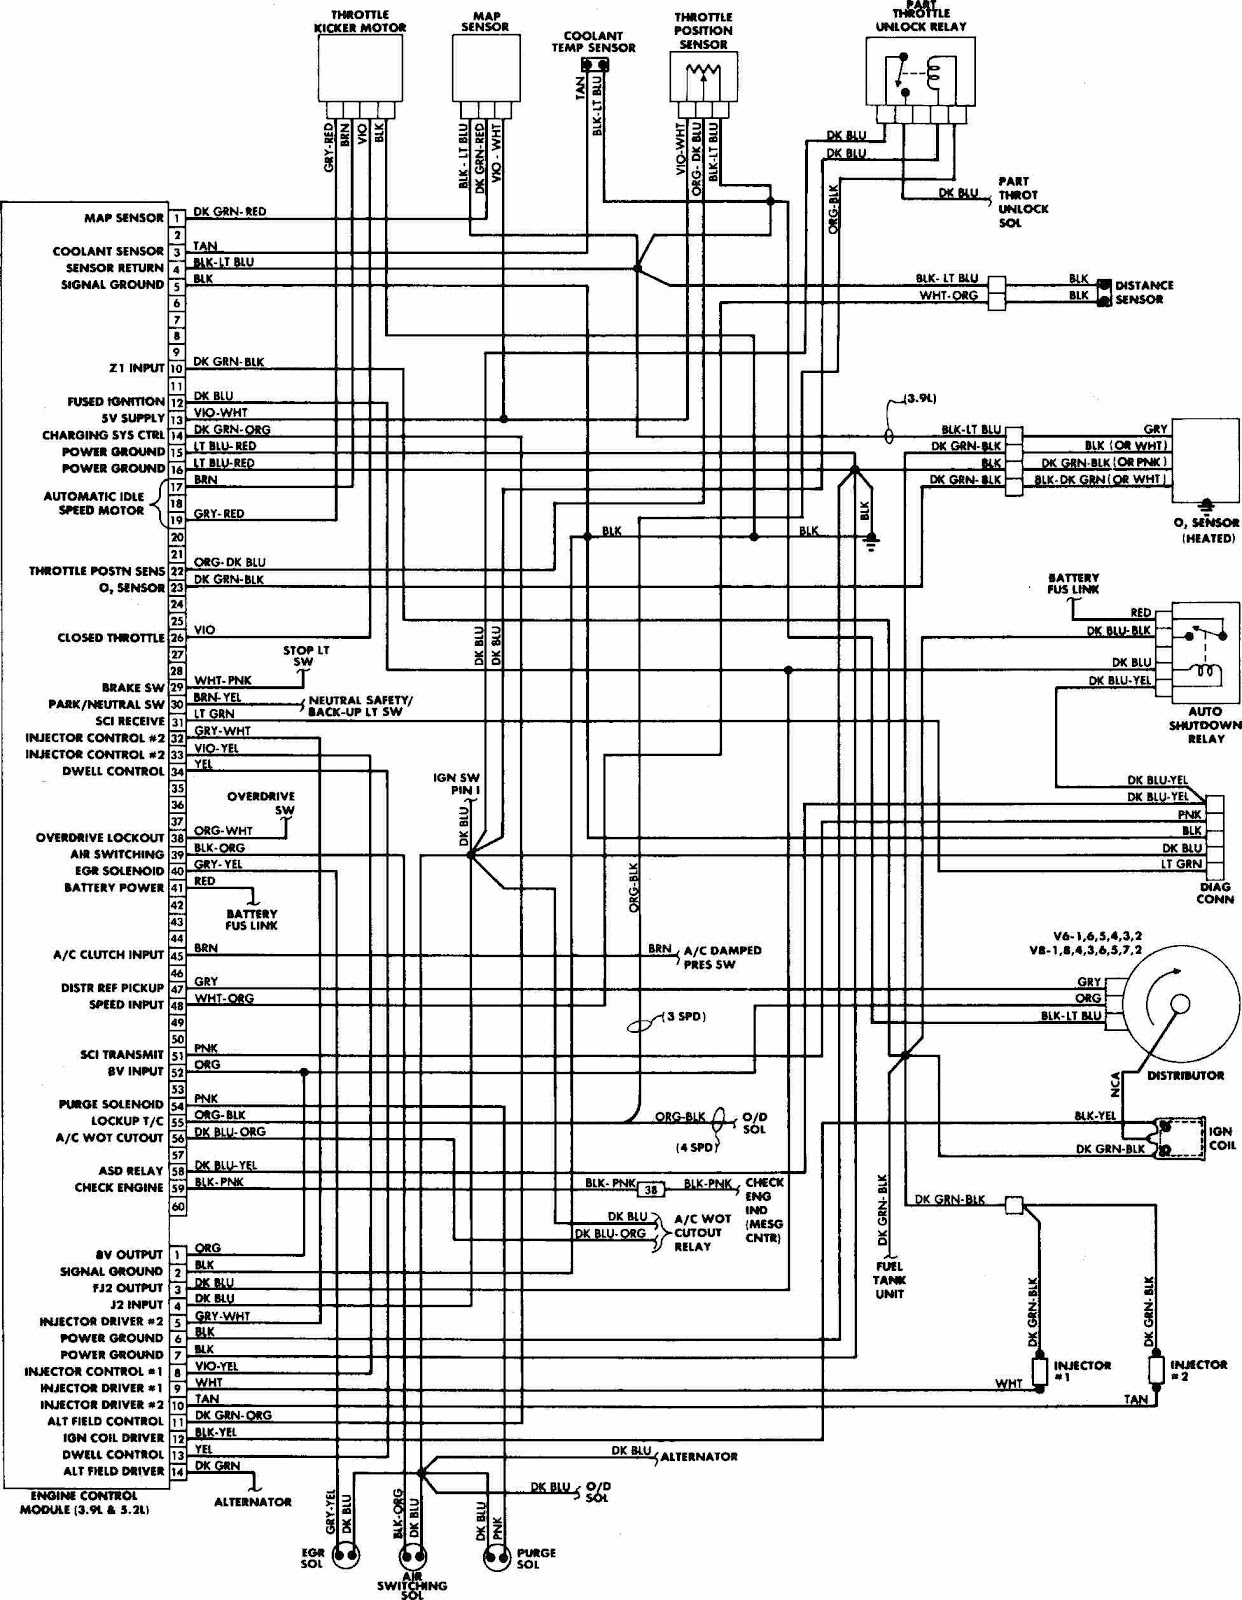 1988 dodge ram wiring diagram 1988 dodge aries wiring diagram